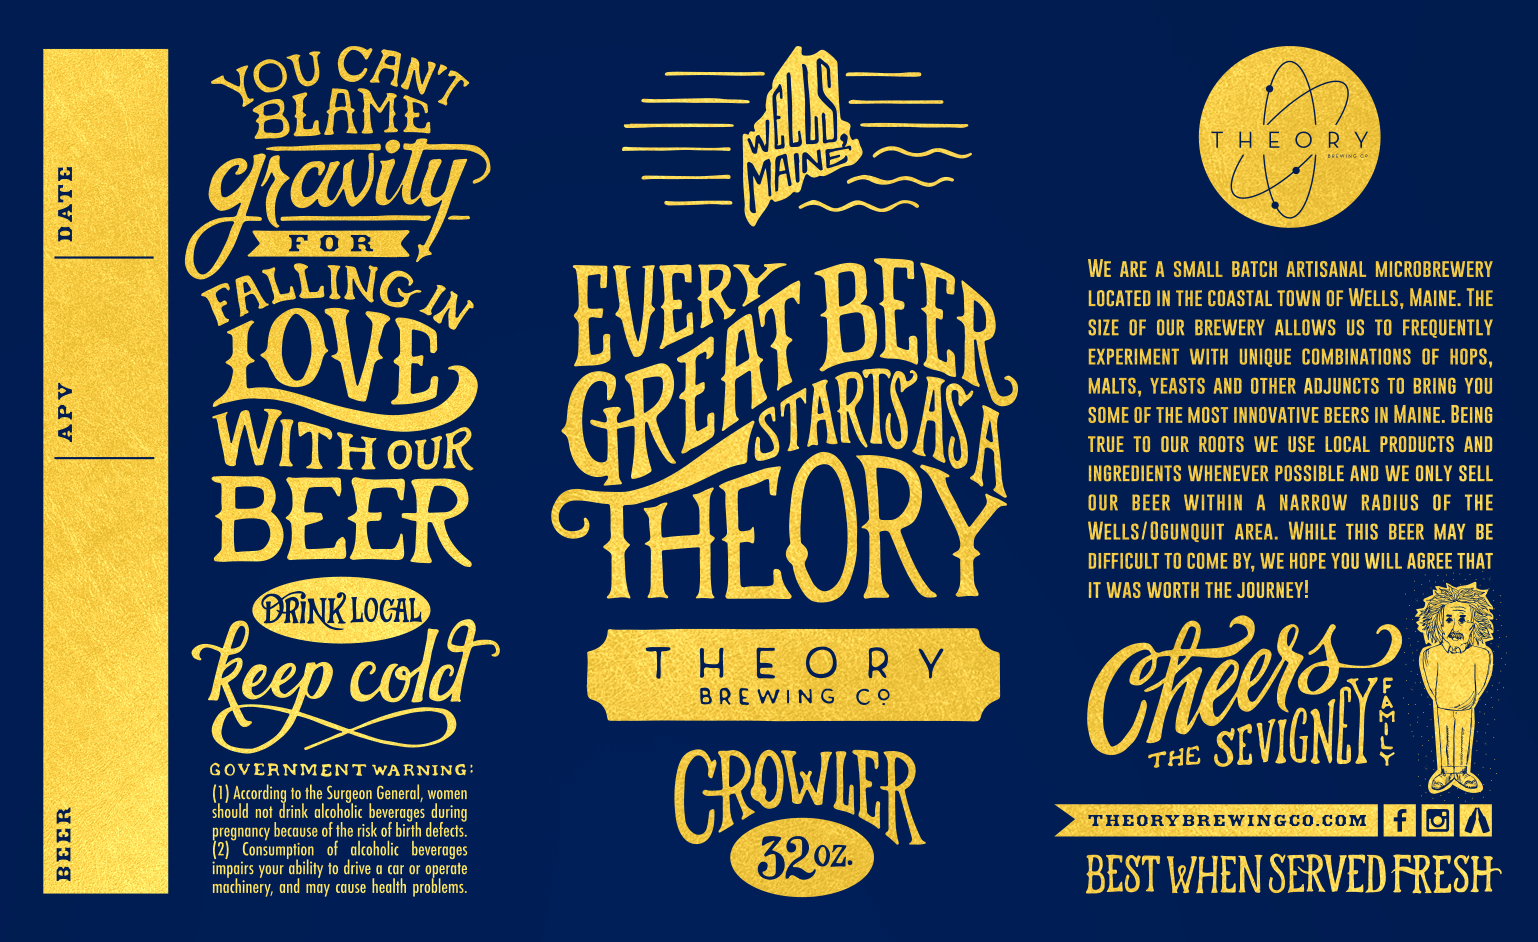 Theory Brewing Co Crowlers  Cans  Beer Label Design Craft Beer With Q Connect Label Template